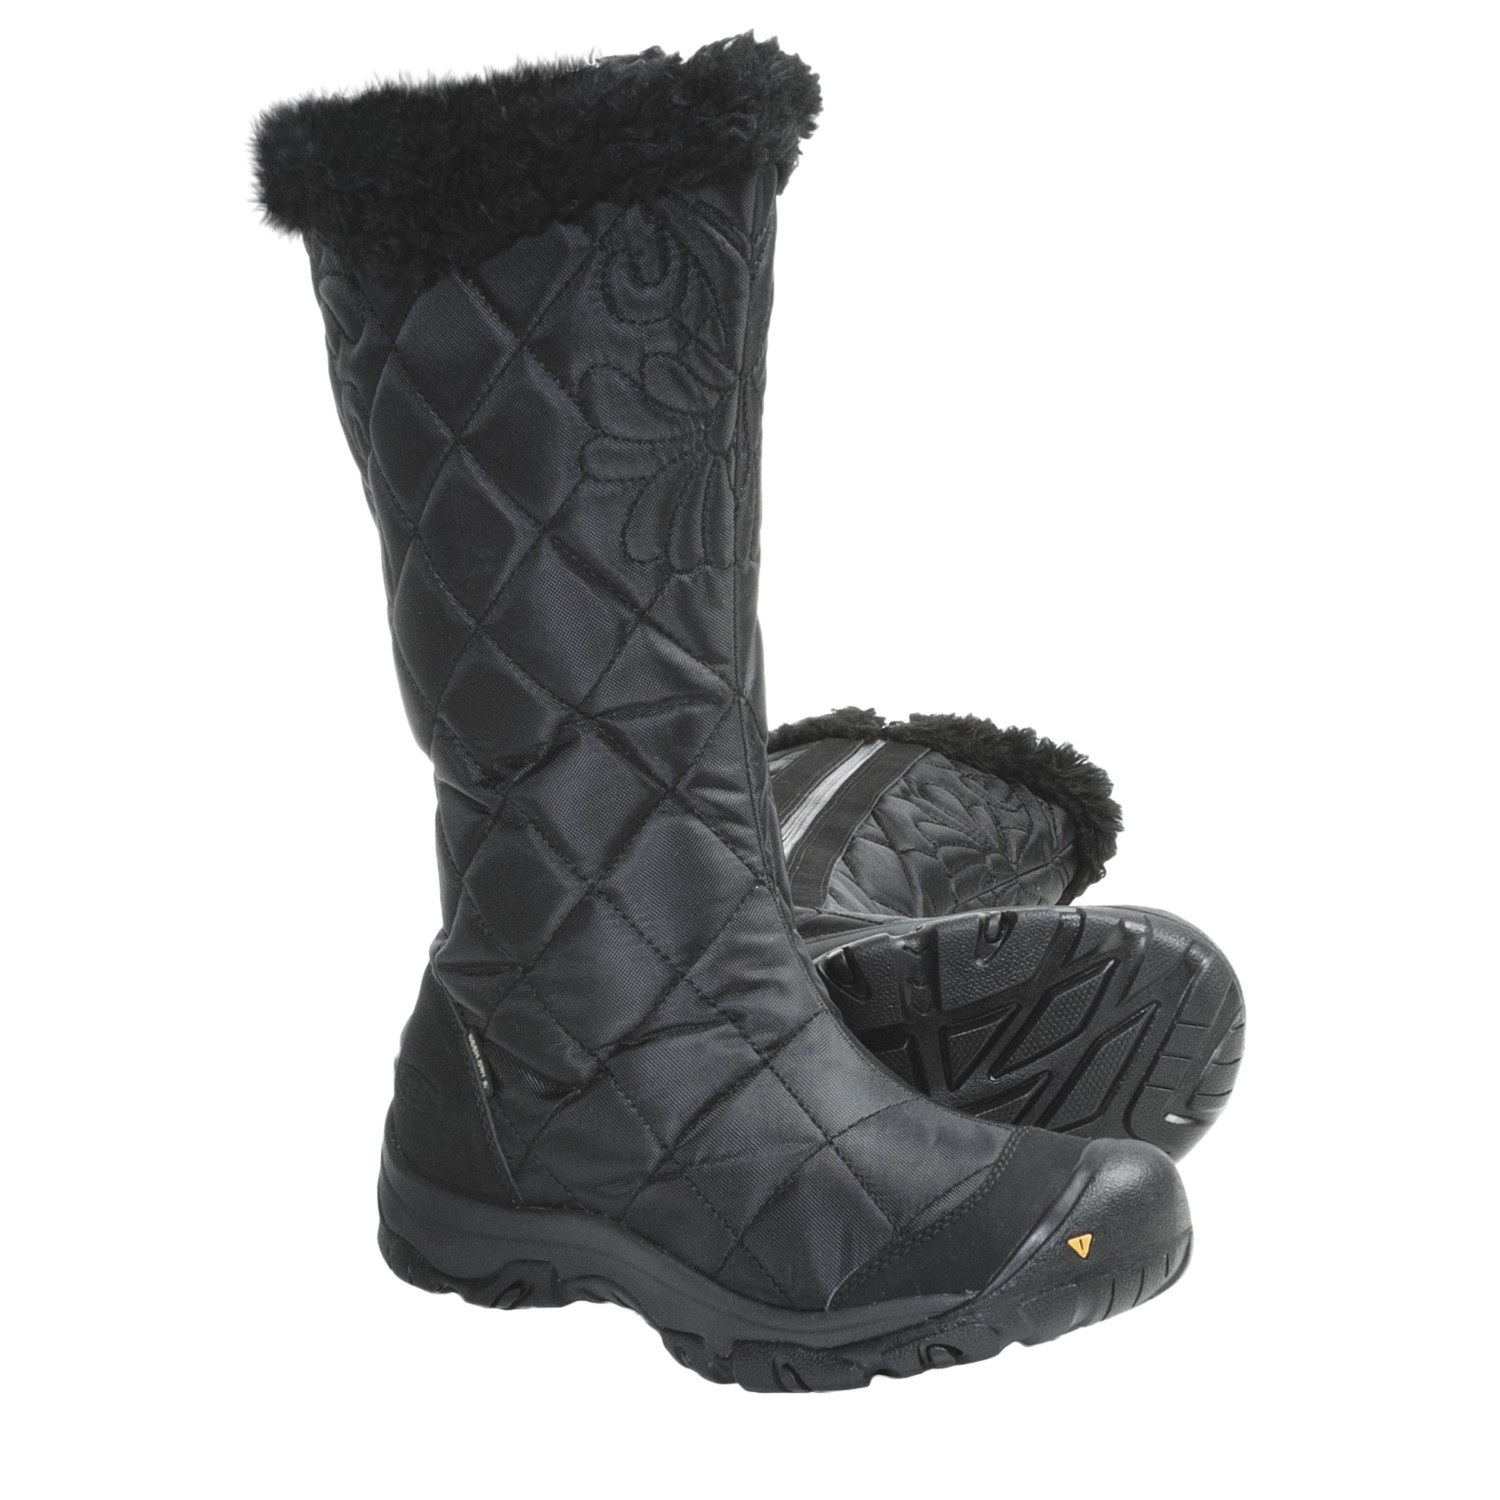 Amazing Pajar Grip High Winter Snow Boots For Women 7631C  Save 44